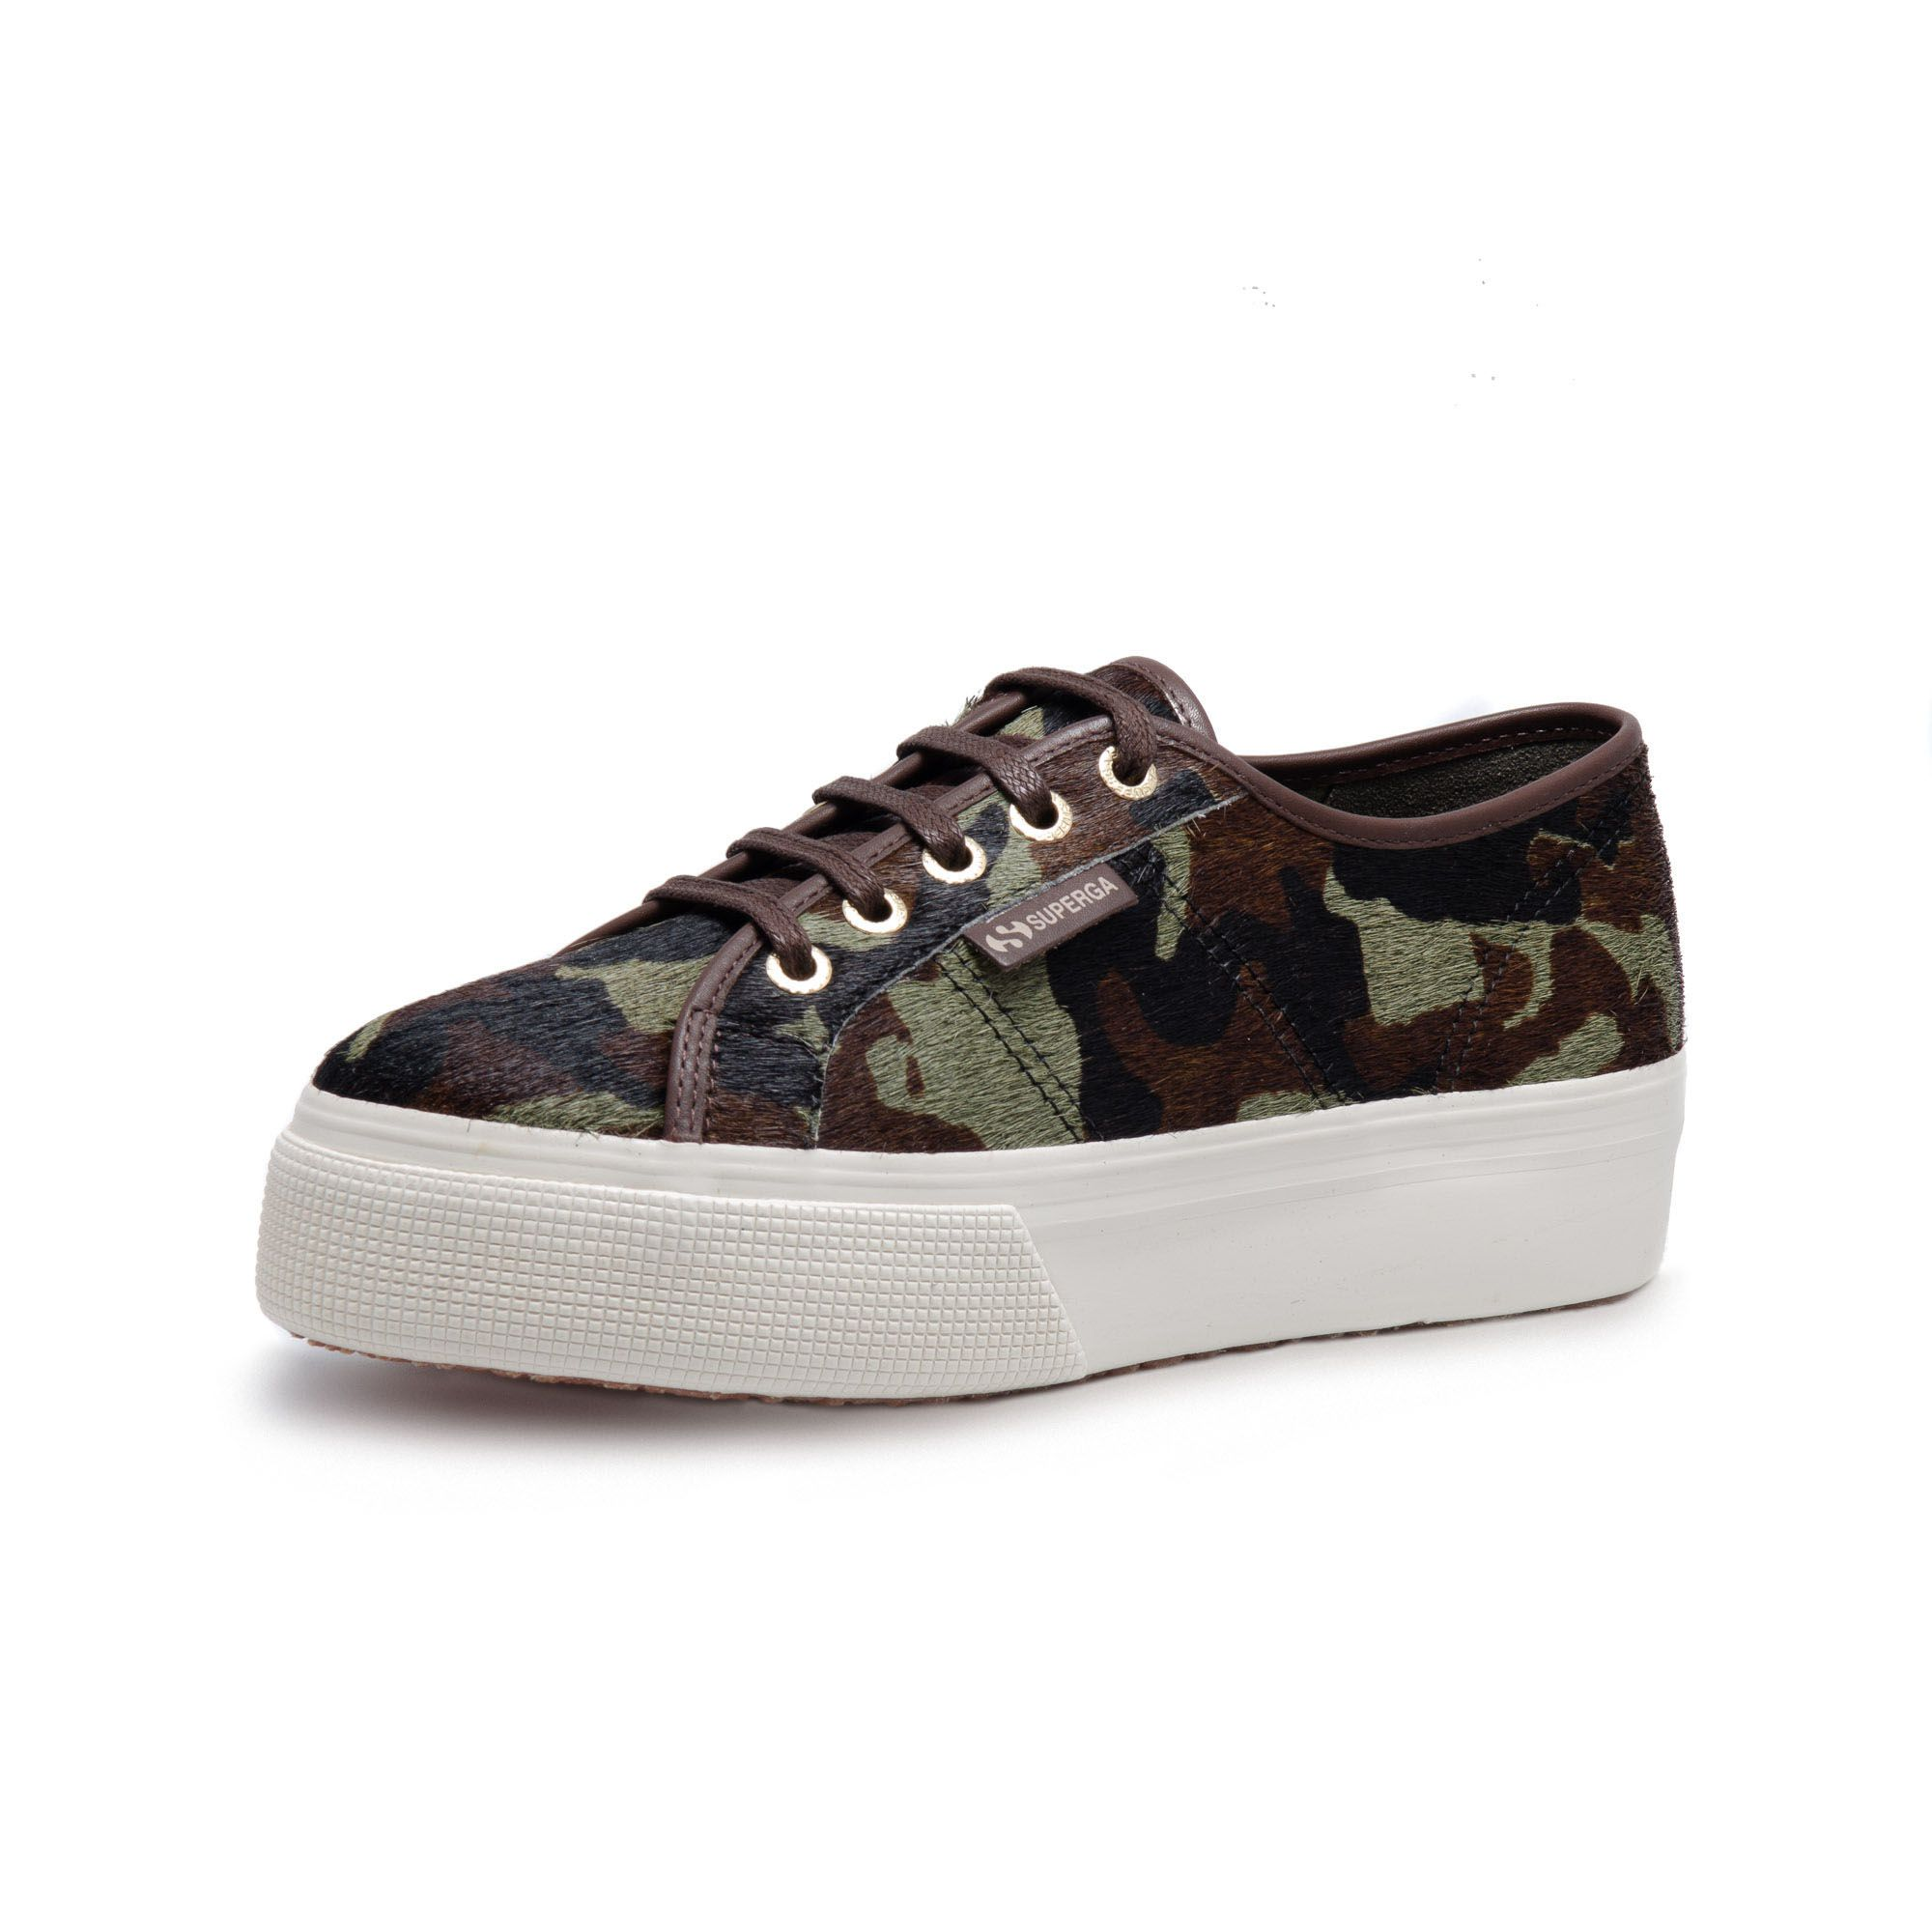 2790 ANIMAL LEATHER - CAMUFLADO